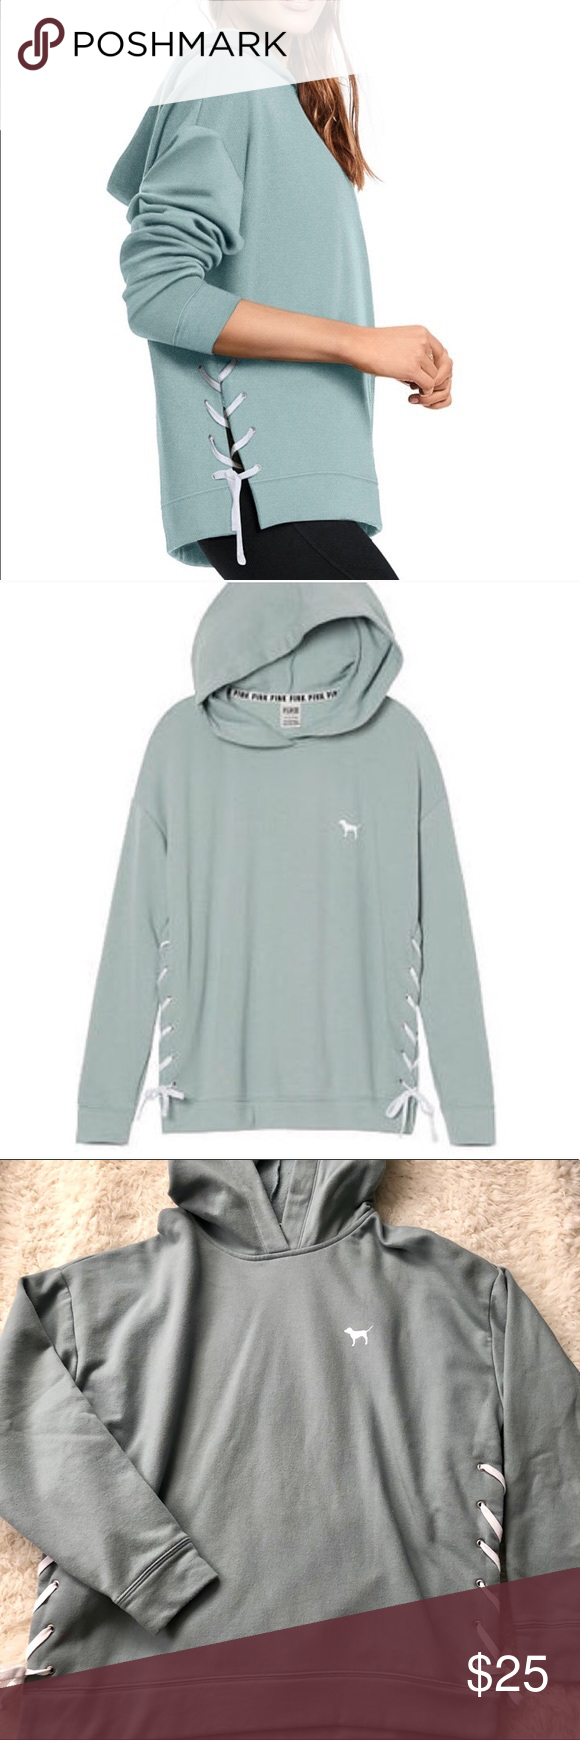 55fbe6b1240 PINK Victoria s Secret lace up hoodie Very trendy and comfy hoodie in a very  pretty sage mint color. Subtle signature dog logo and lace up side details.